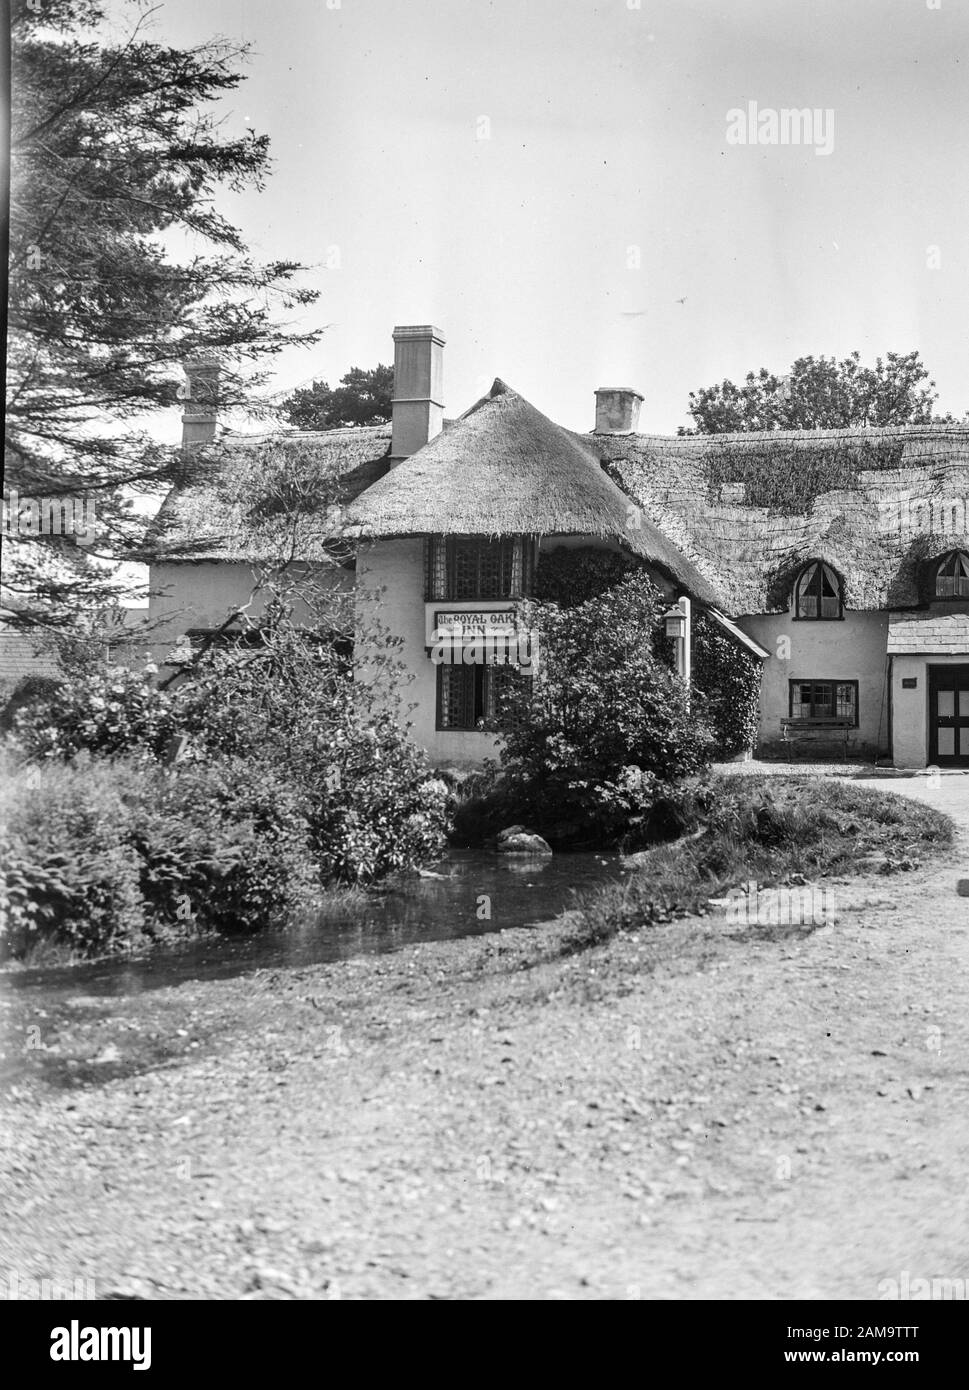 Archive image circa 1925 of The Royal Oak Inn, Winsford village in Exmore, Somerset, UK. Scanned from the original negative Stock Photo